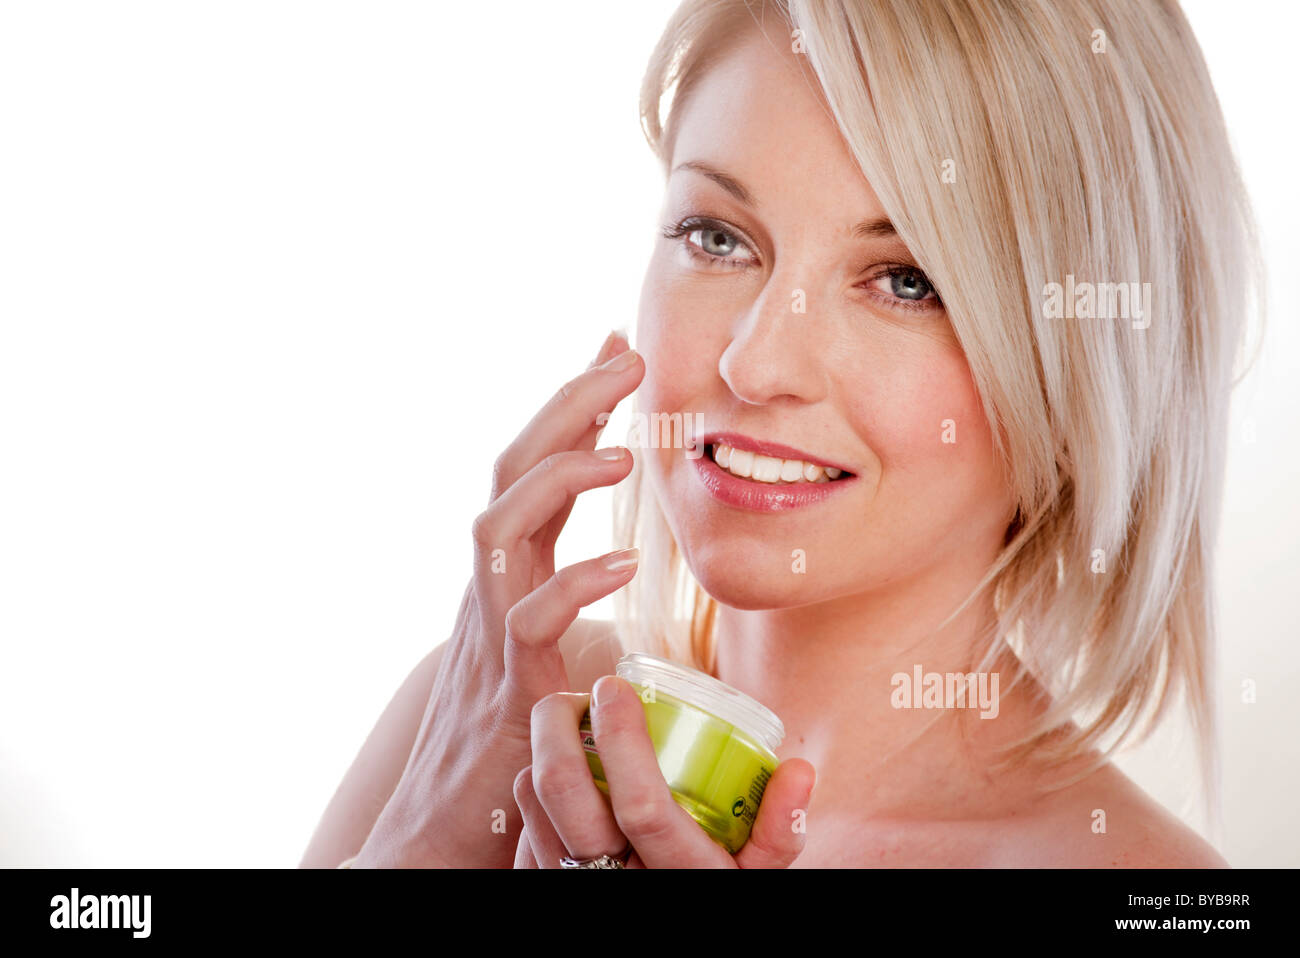 blonde woman applying face cream holding the jar in her hand. - Stock Image